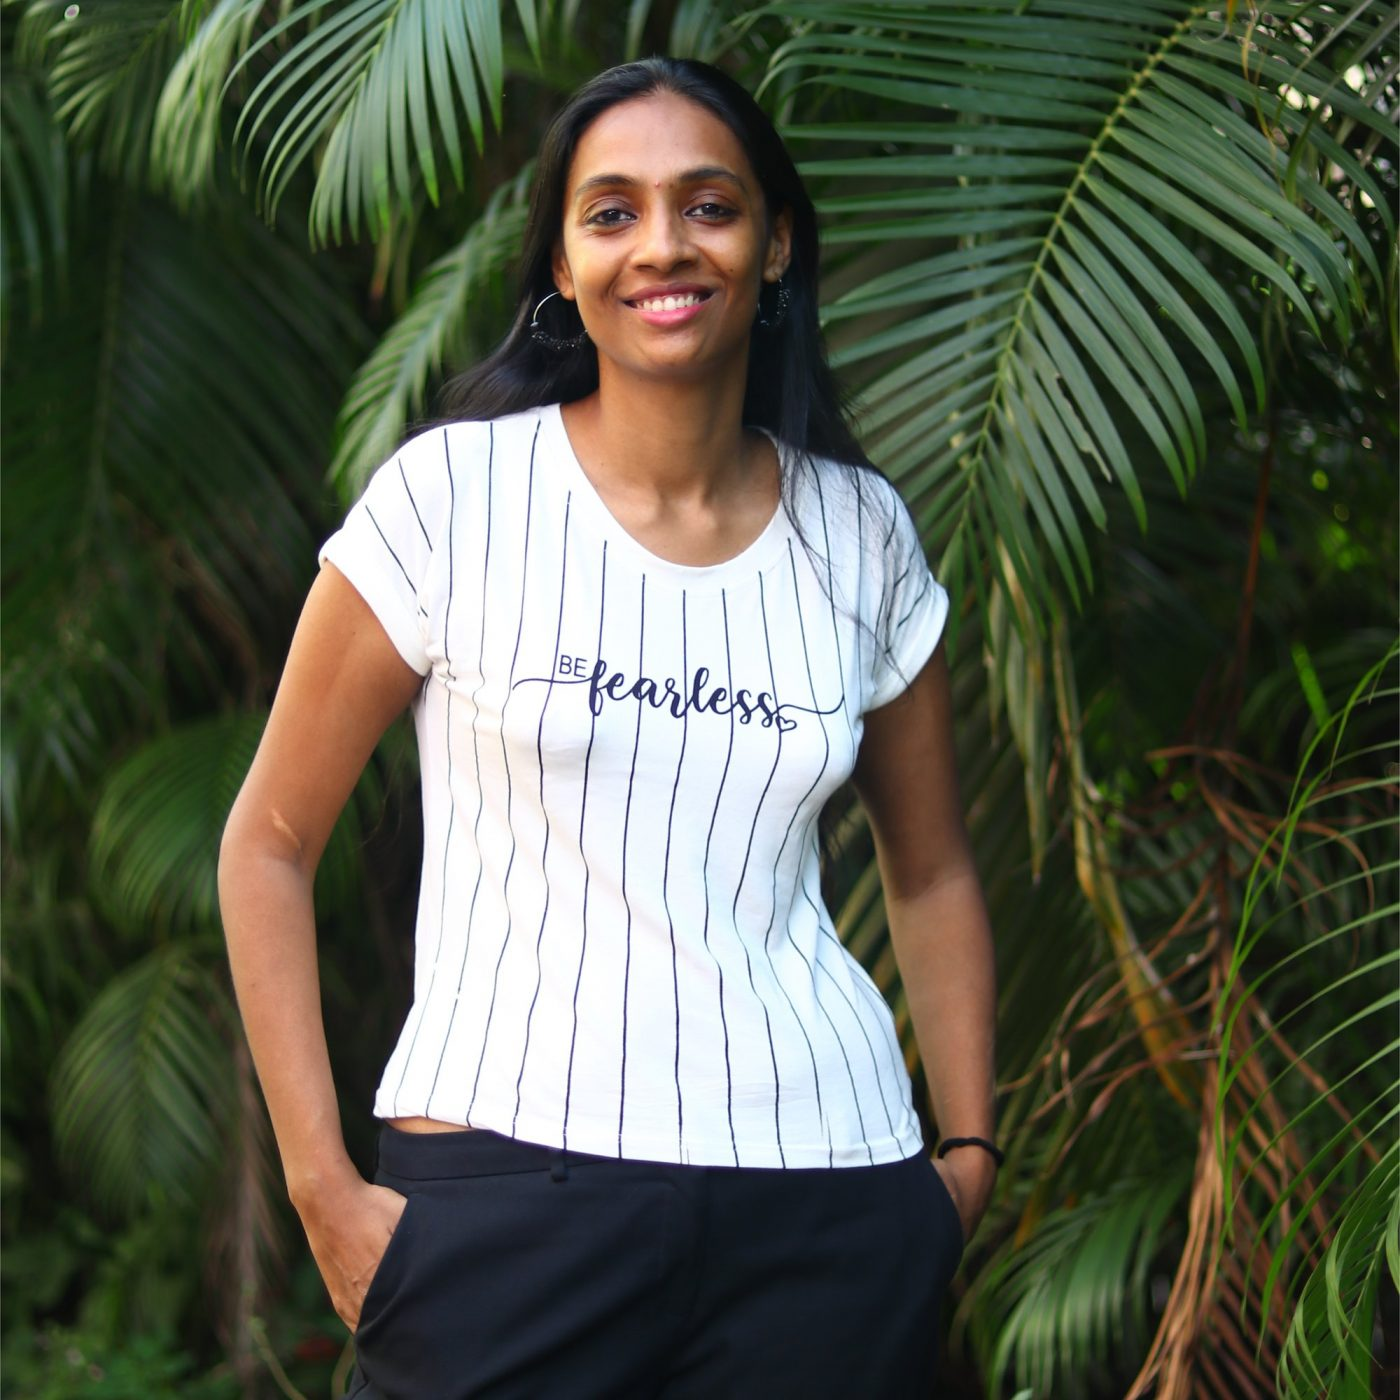 Pallavi standing by a tree with a t-shirt saying 'fearless' on it